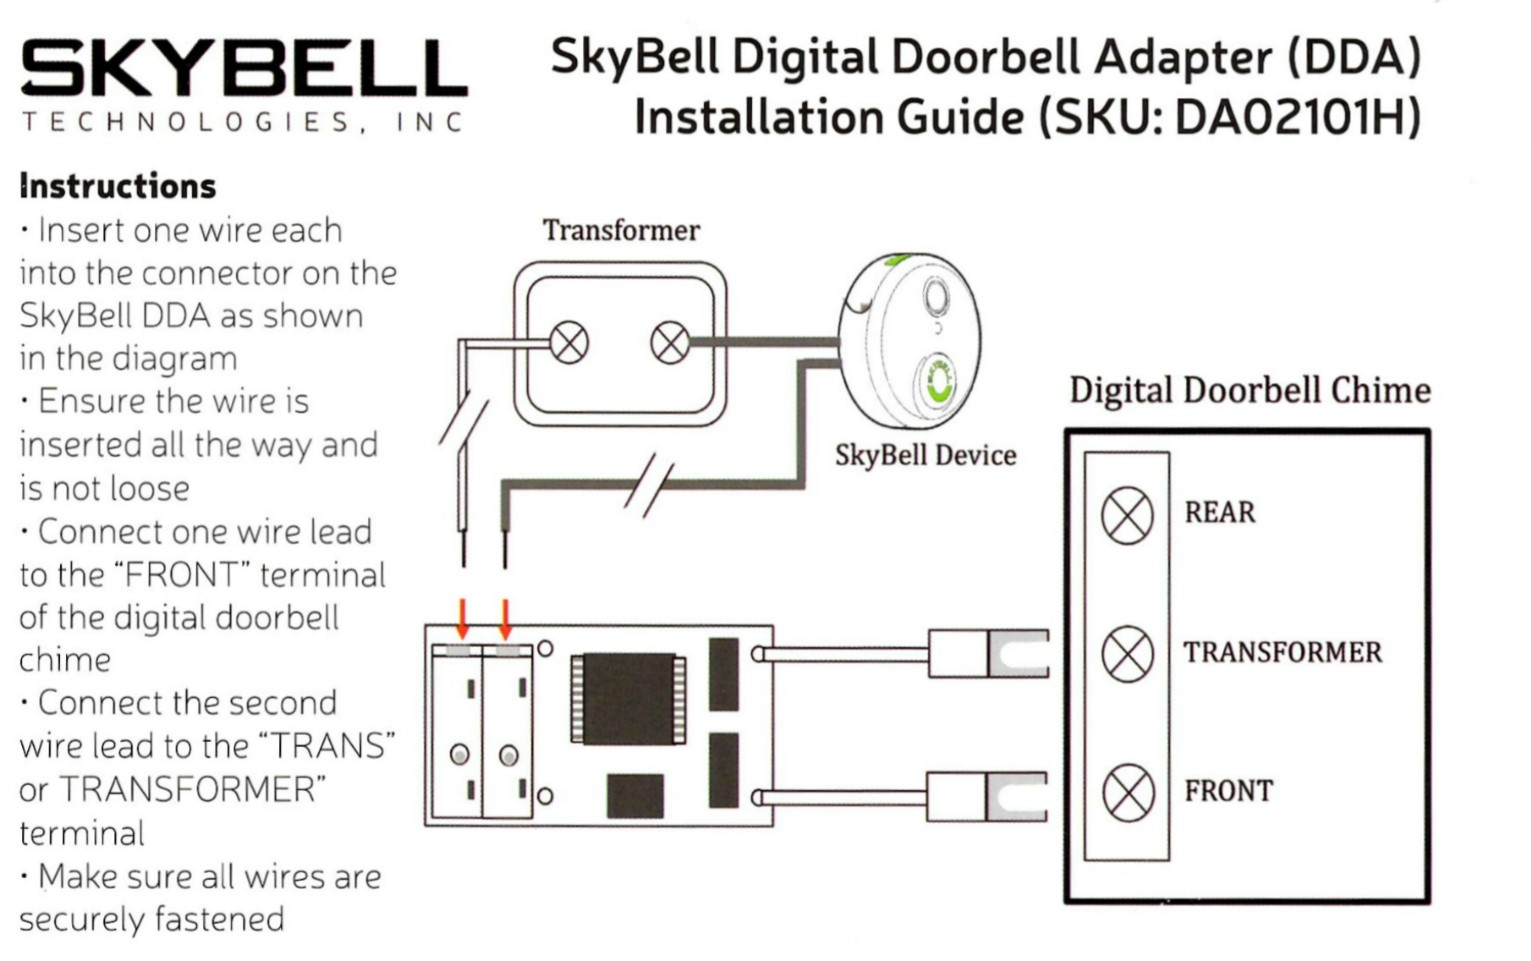 Do I Need A Digital Doorbell Adapter How Install It Skybell Basic Wiring Click For Details Diagram With Accessory And Dda Instructions Installation Video